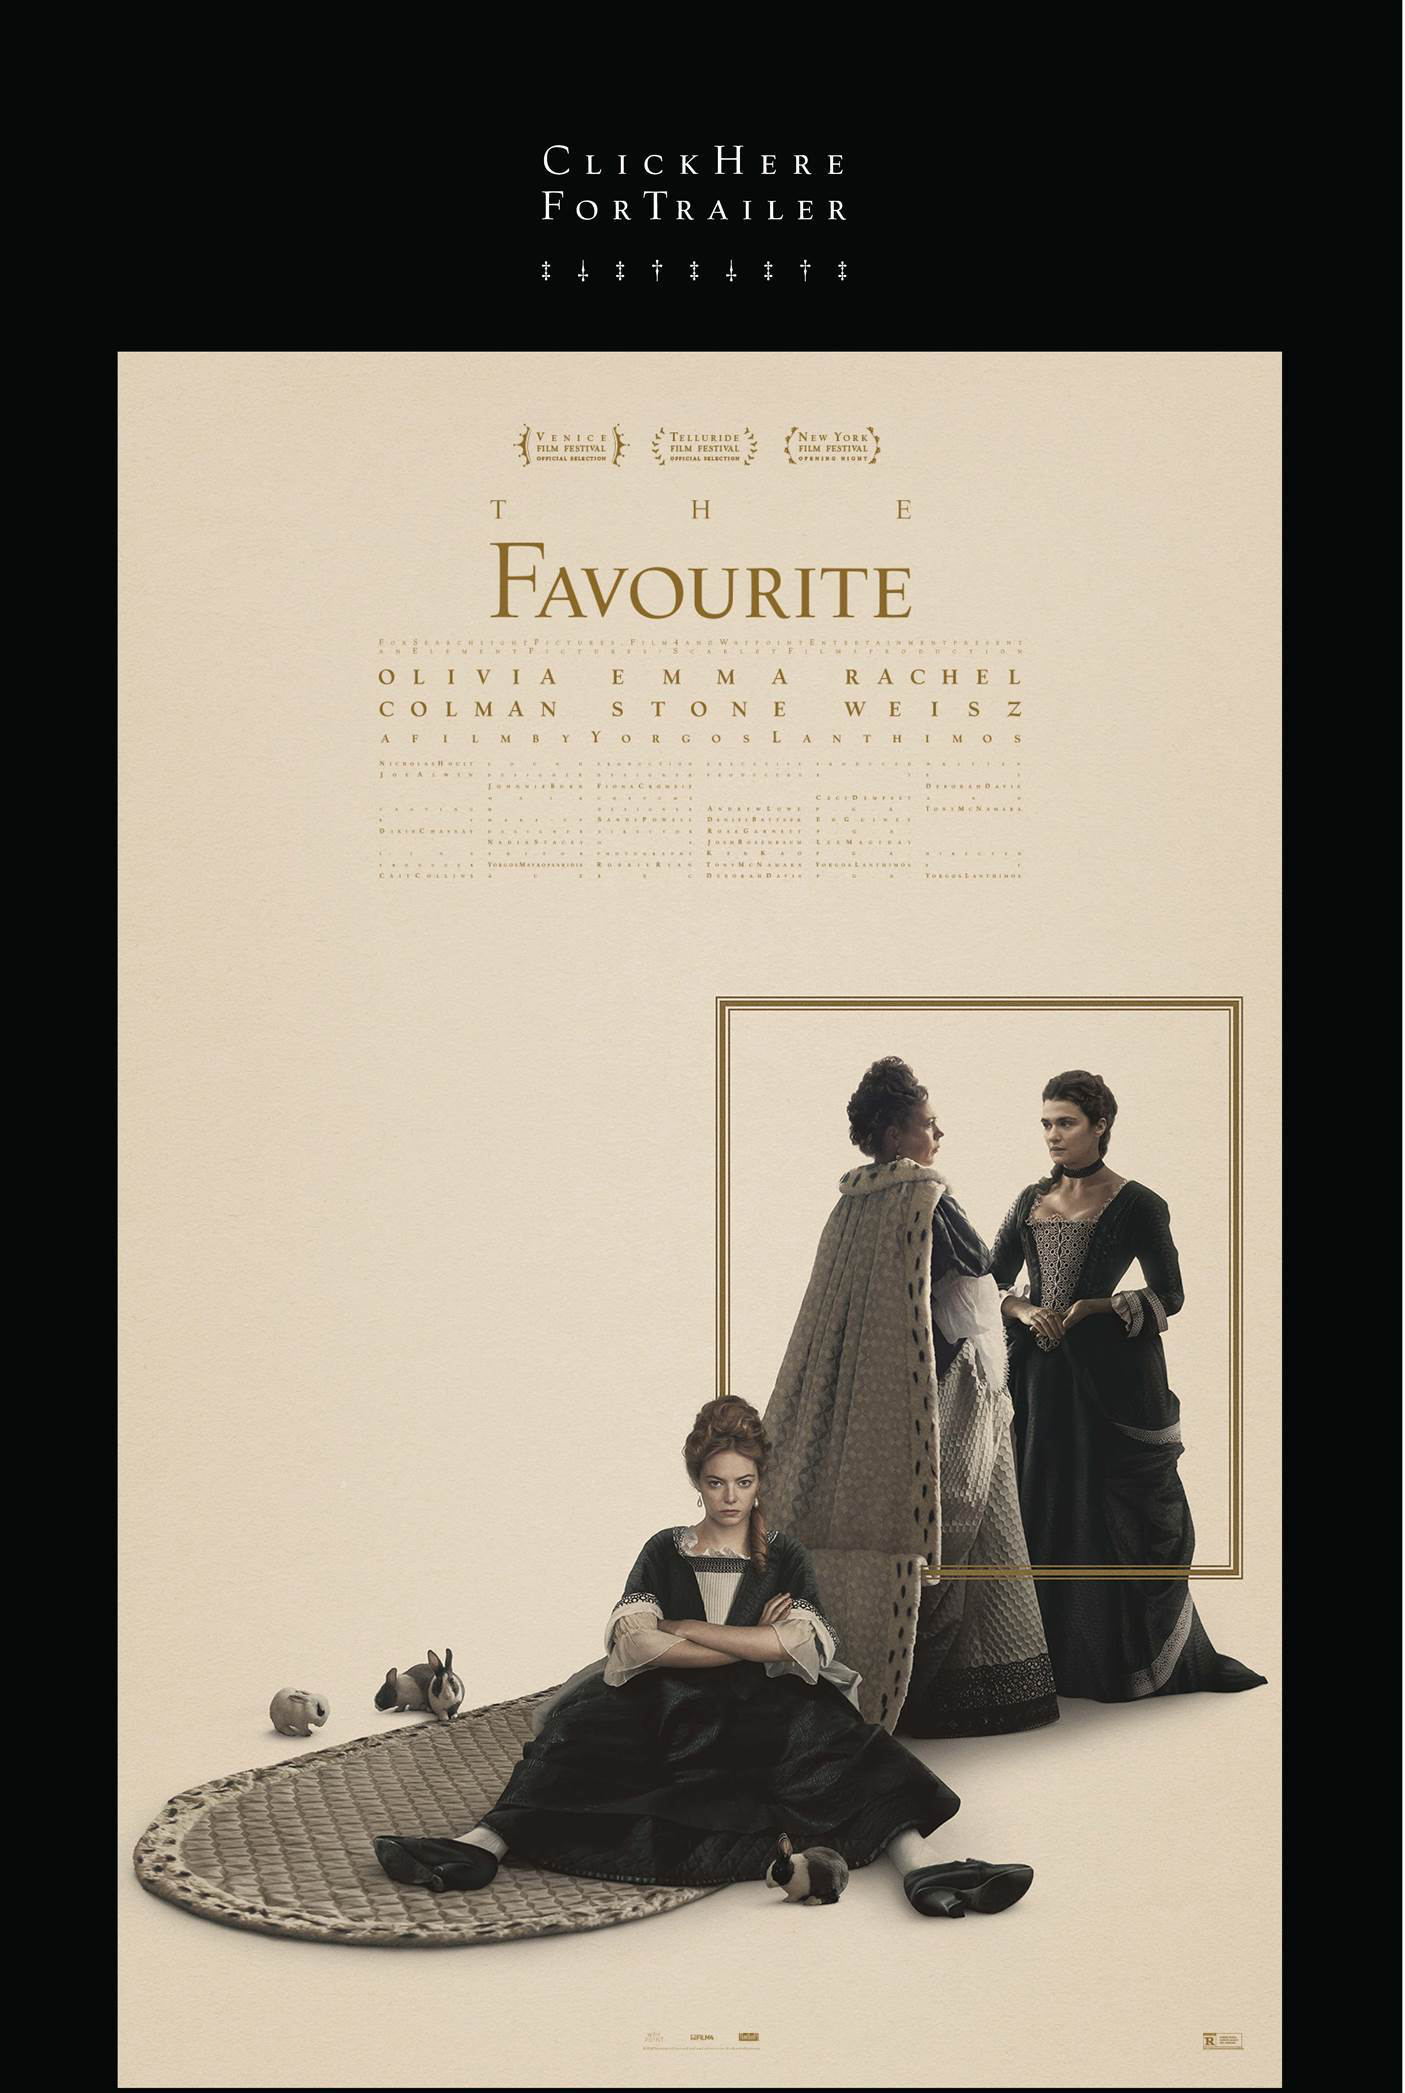 The Favourite is scheduled to open in the New York Film Festival on September 28